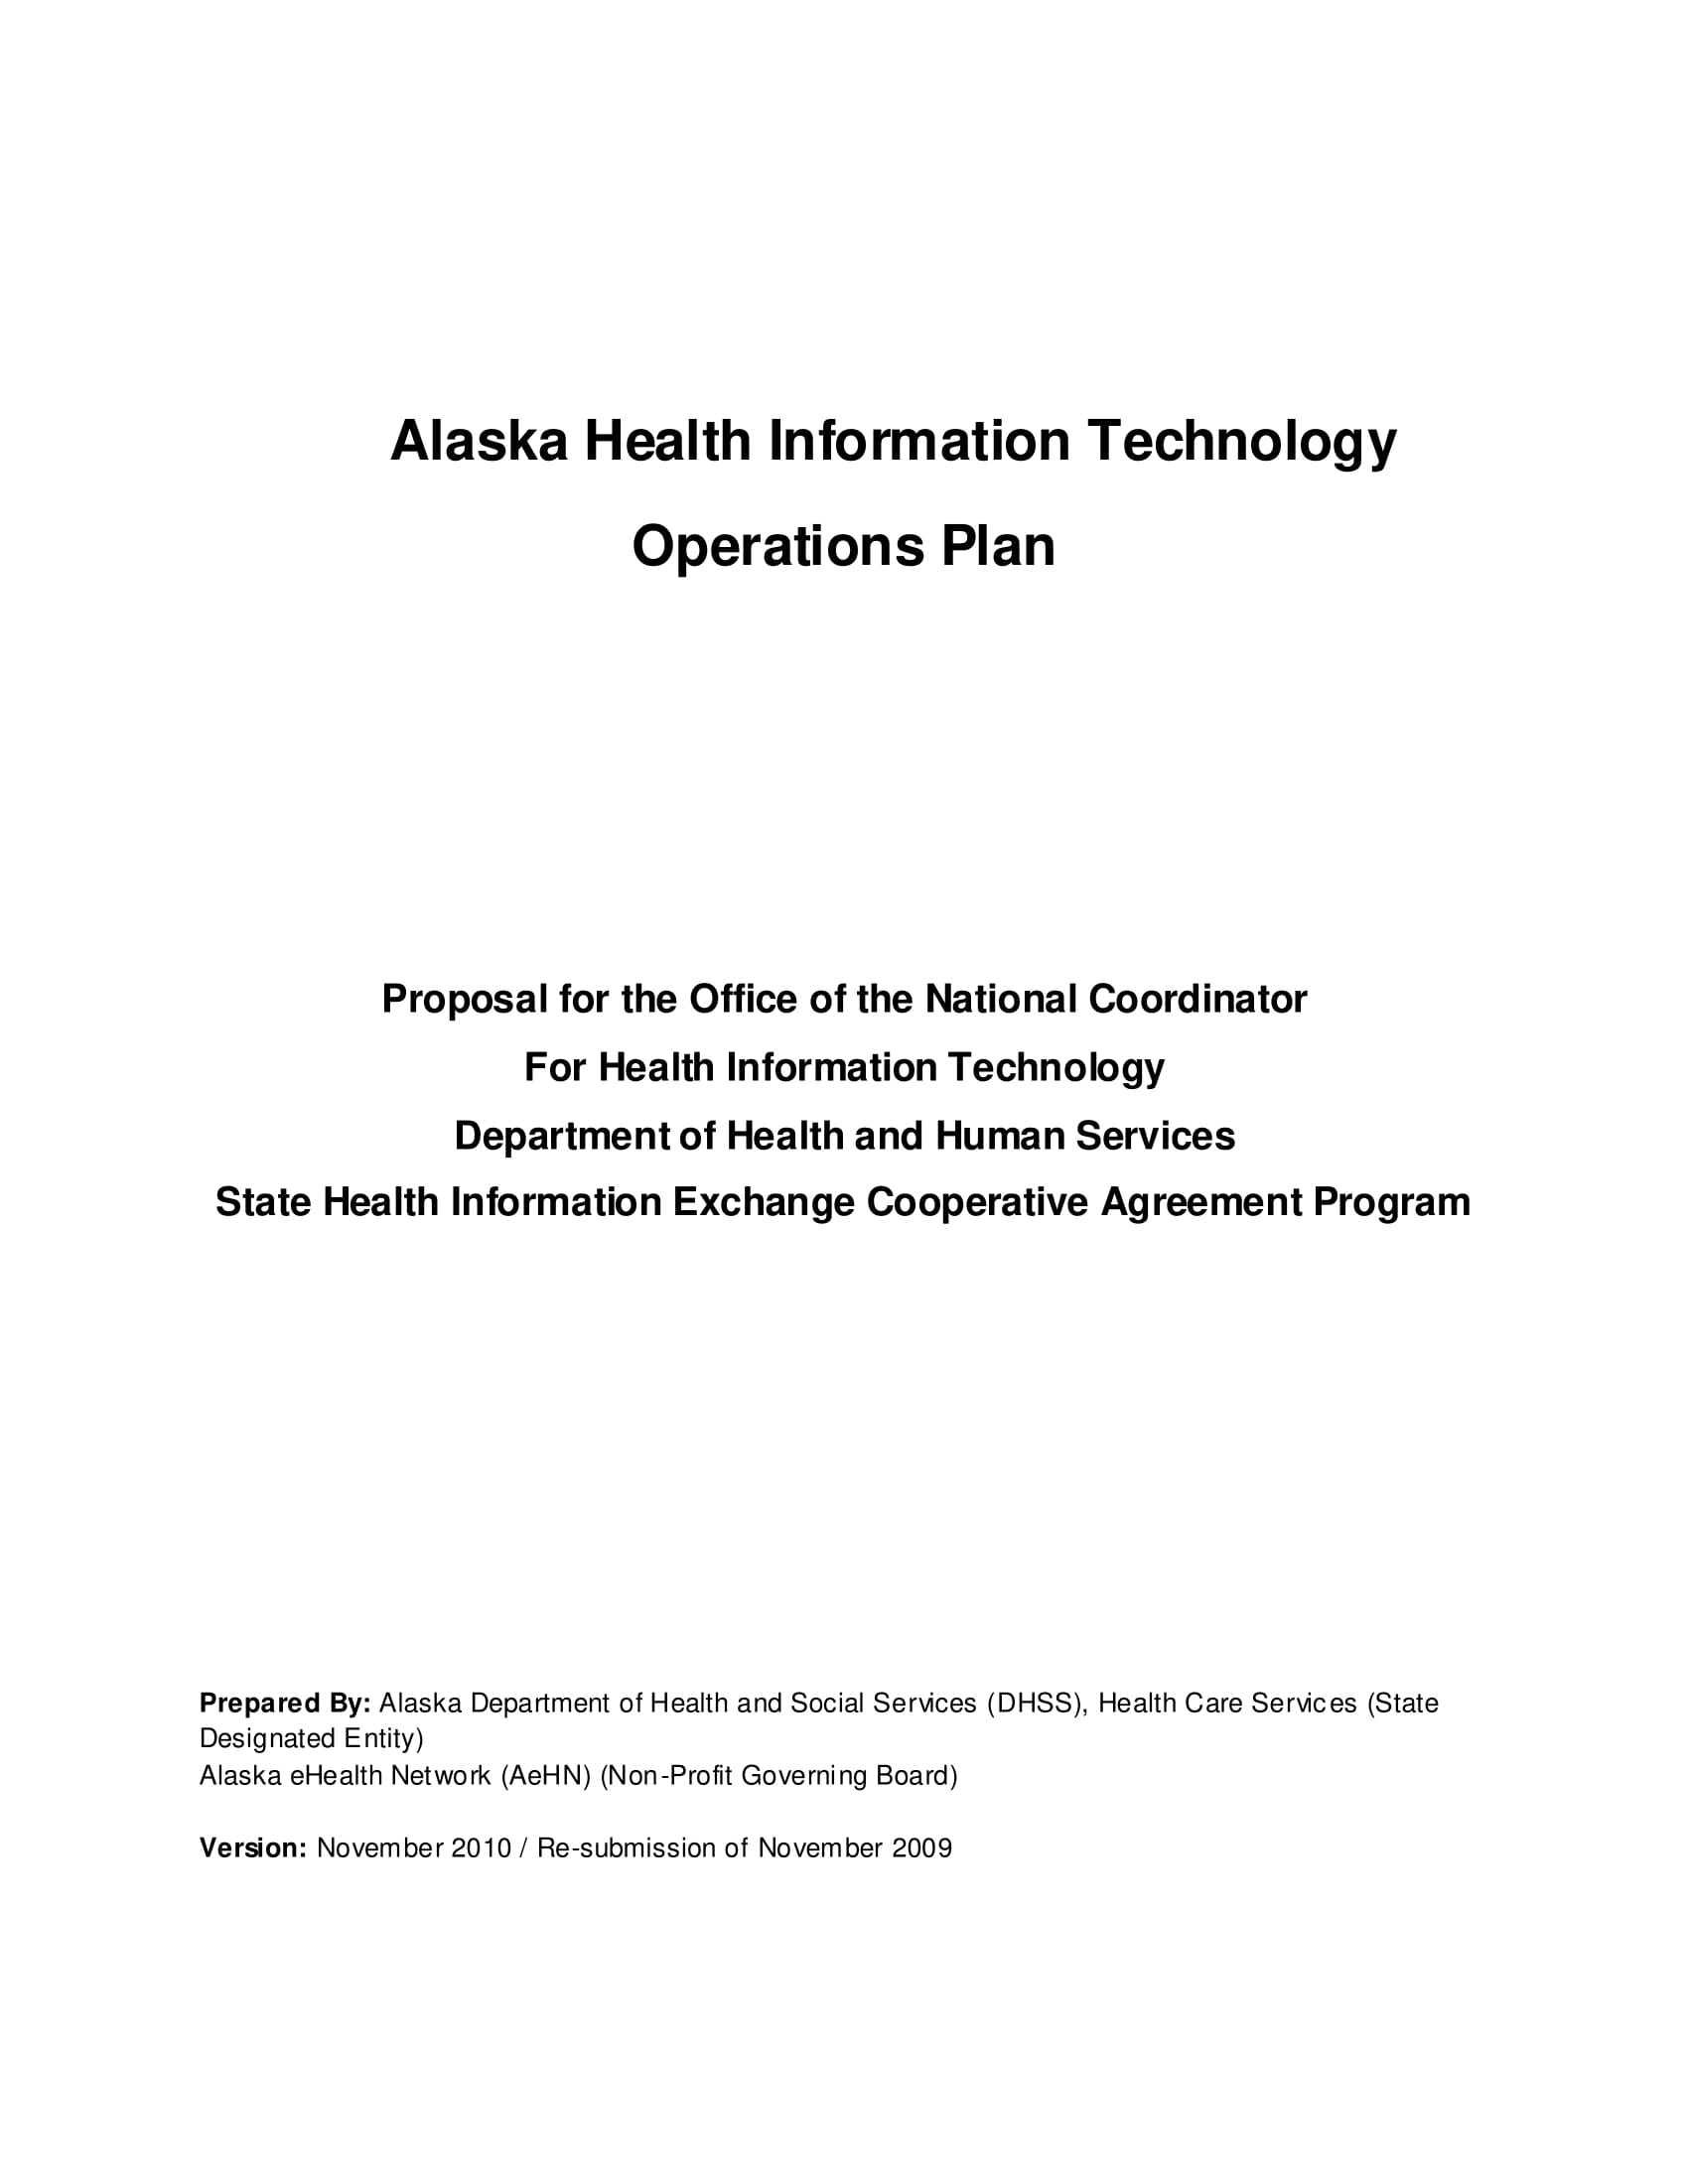 health information technology operations plan example 01